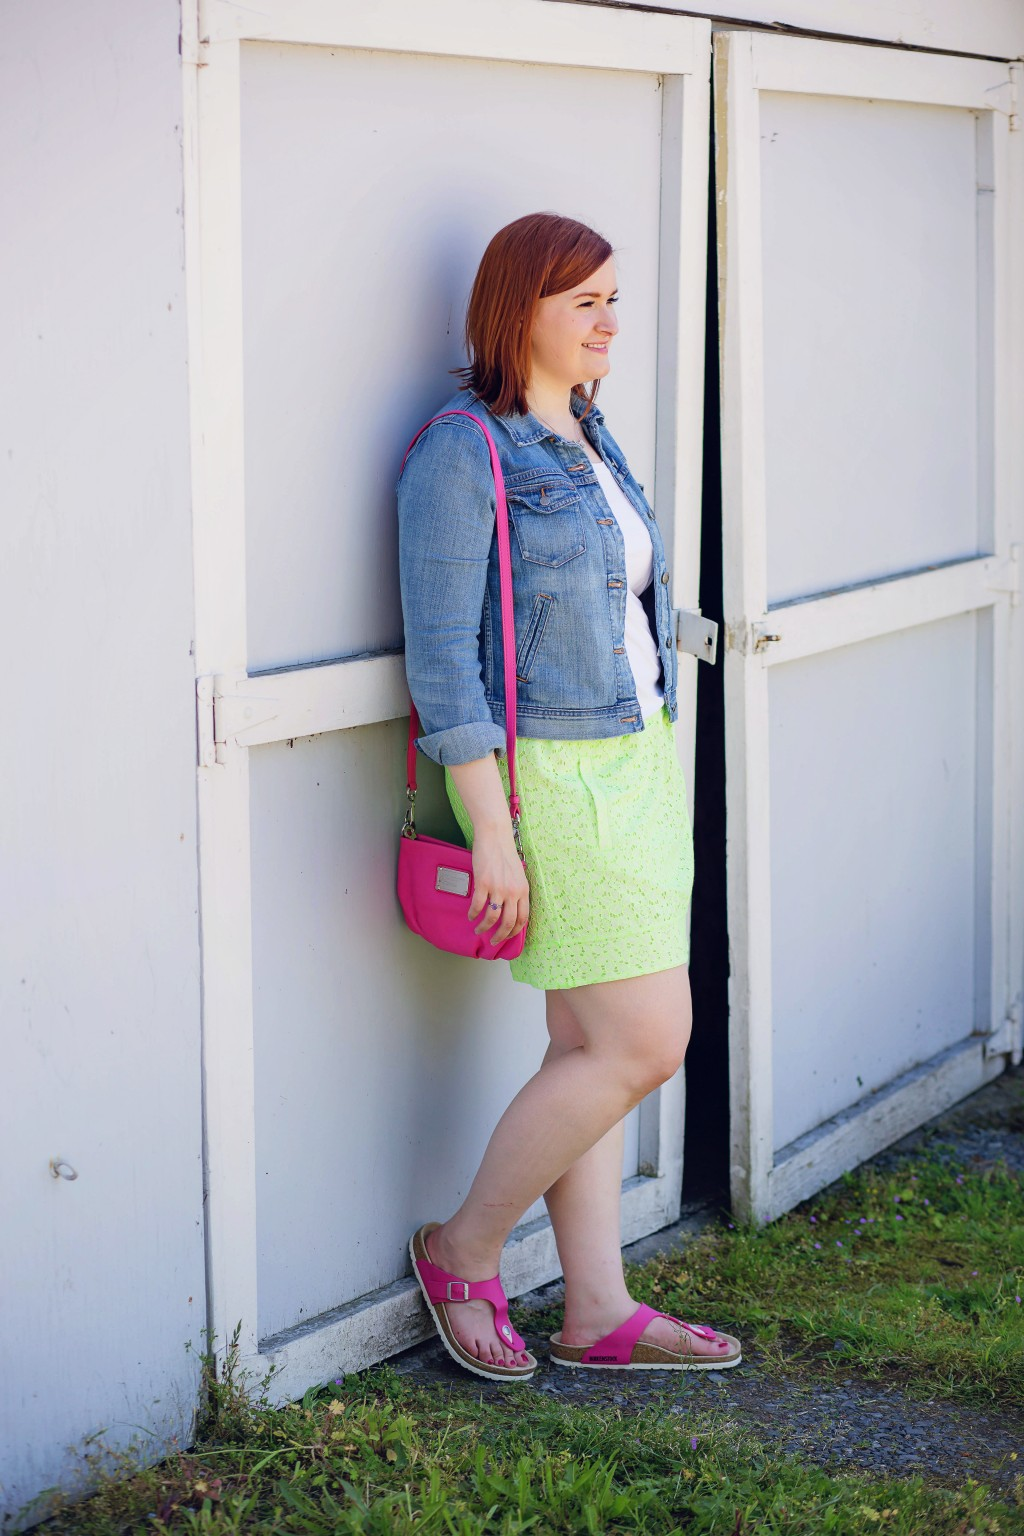 1 - Kate Retherford of All Things Kate neon summer style